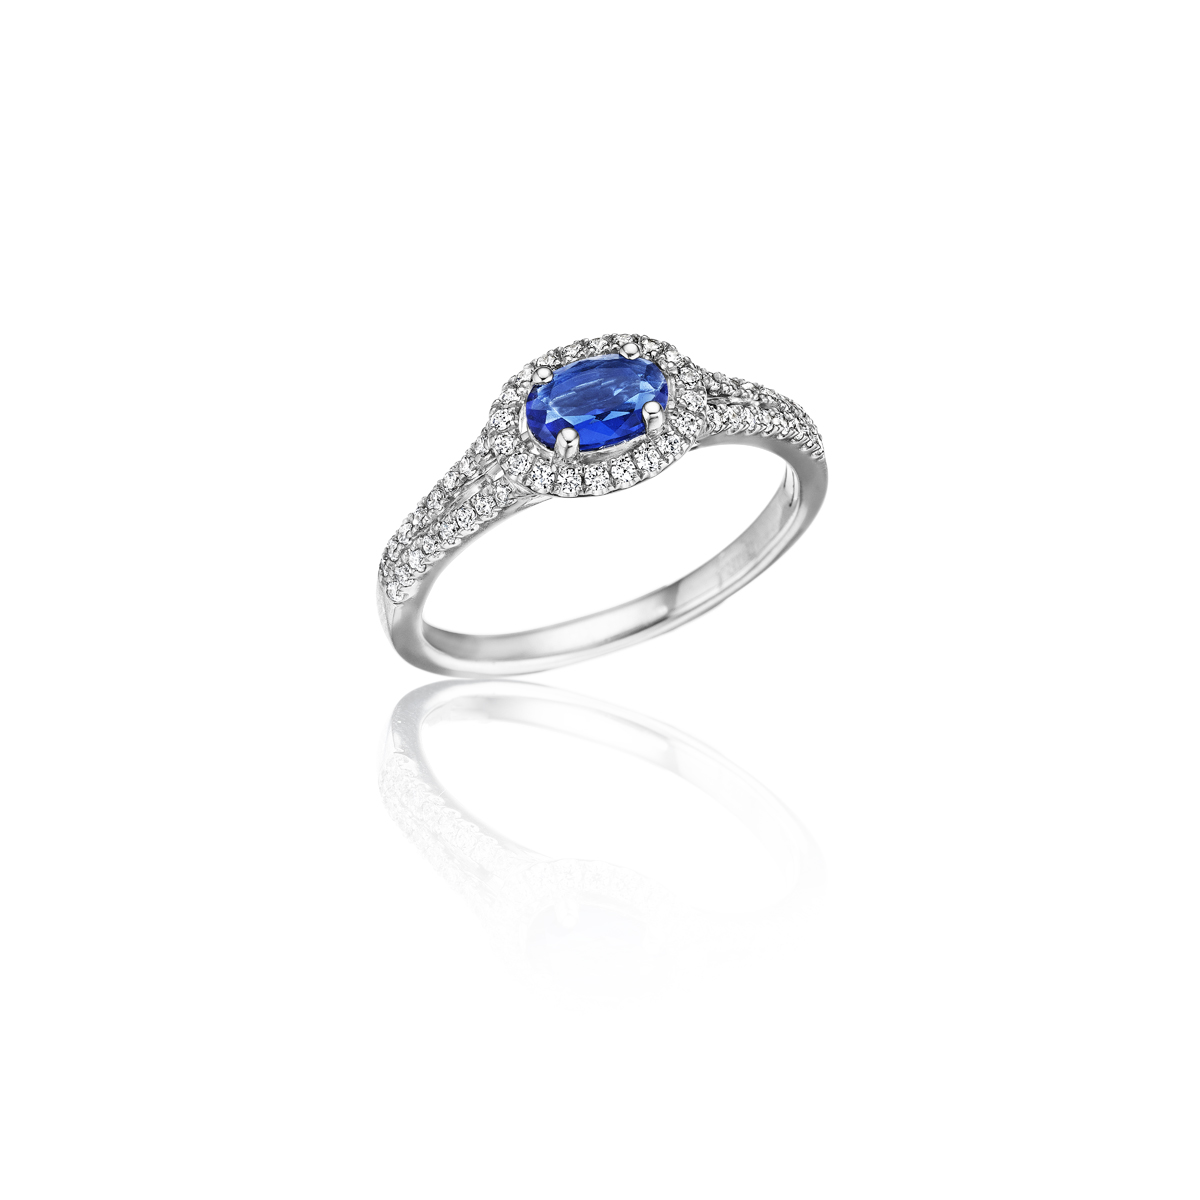 Always On My Mind Sapphire and Diamond Oval Cut Ring - This always on my mind sapphire and diamond oval cut ring comes in a variety of material types like 14k white gold, yellow gold, rose gold and can be customized with your jeweler. Fana diamond earrings are perfect for that special woman in your life.